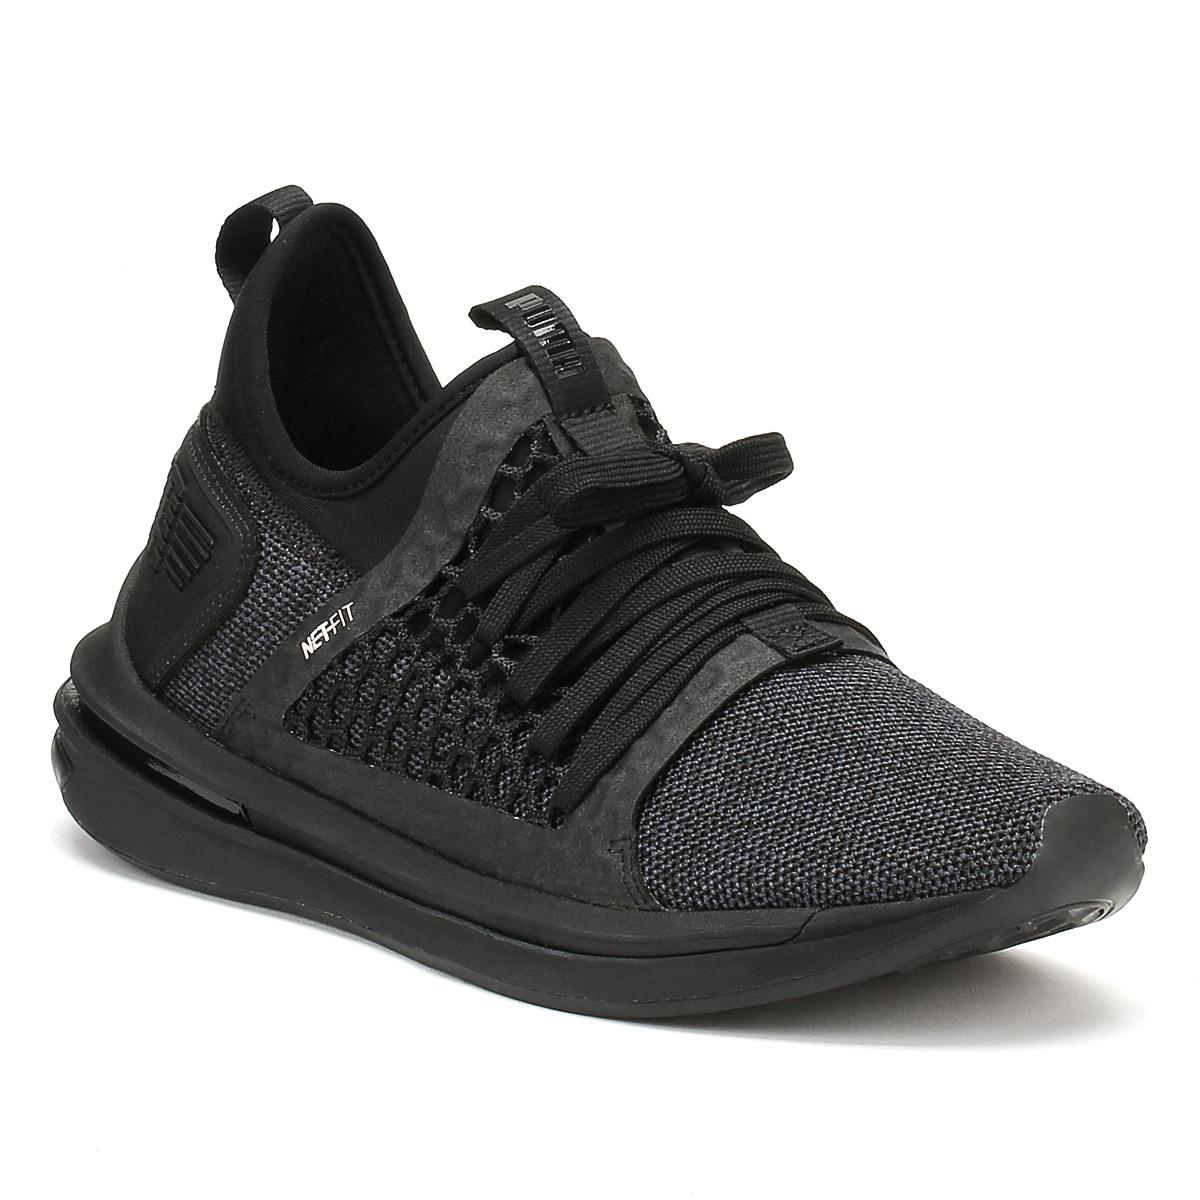 ad0231c2bb82 Lyst - PUMA Mens Black Ignite Limitless Sr Netfit Trainers in Black ...